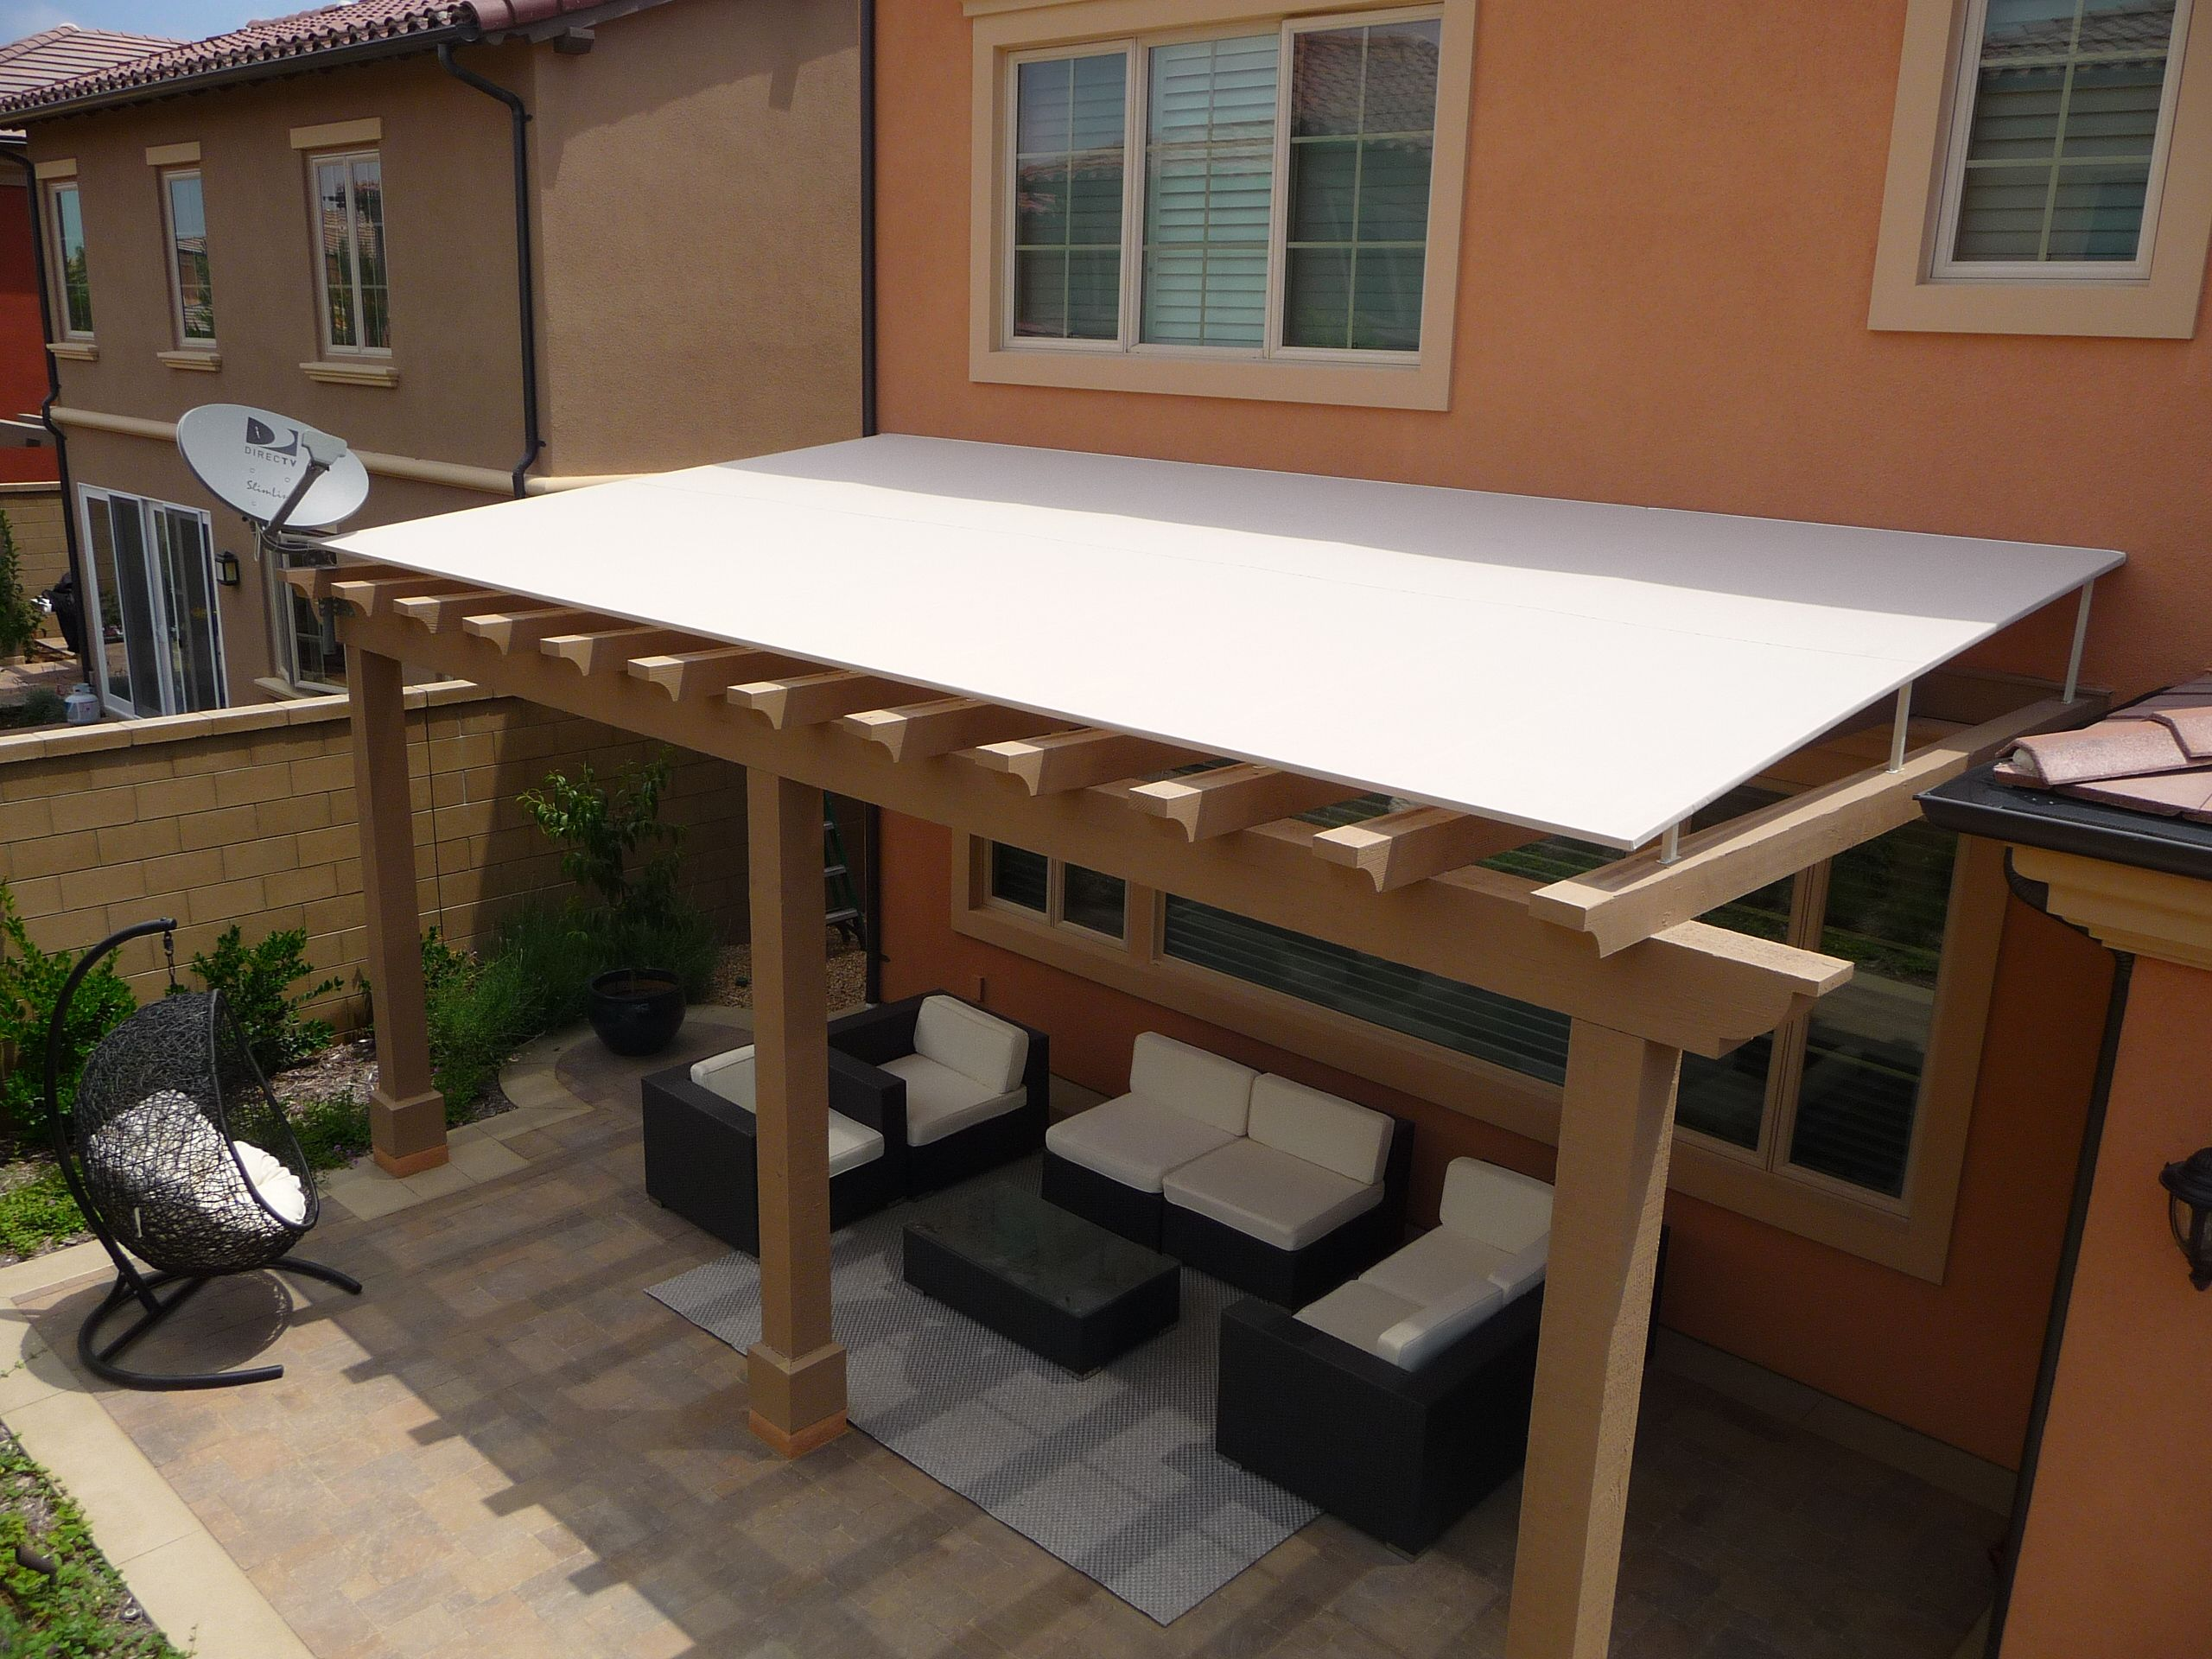 awning decks of awnings aluminum l titolo come permanent ideas us covers residential graphics for best